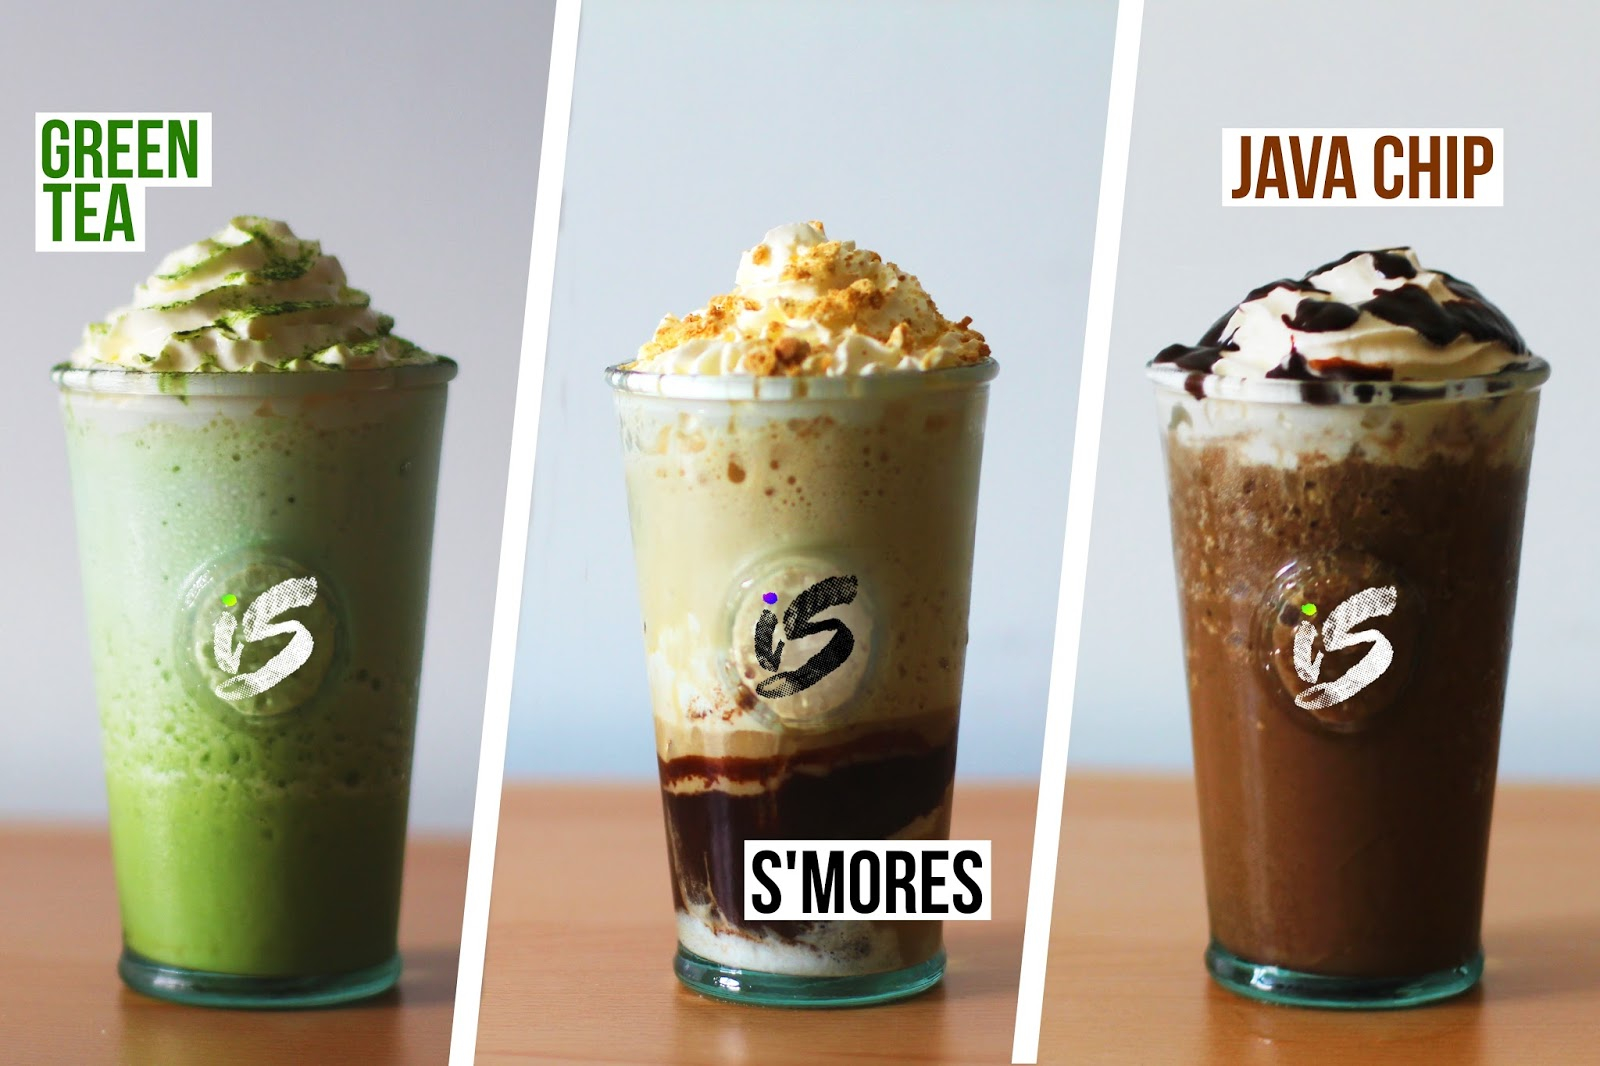 Isaamuel S Recipes Delicious Desserts Green Tea S Mores